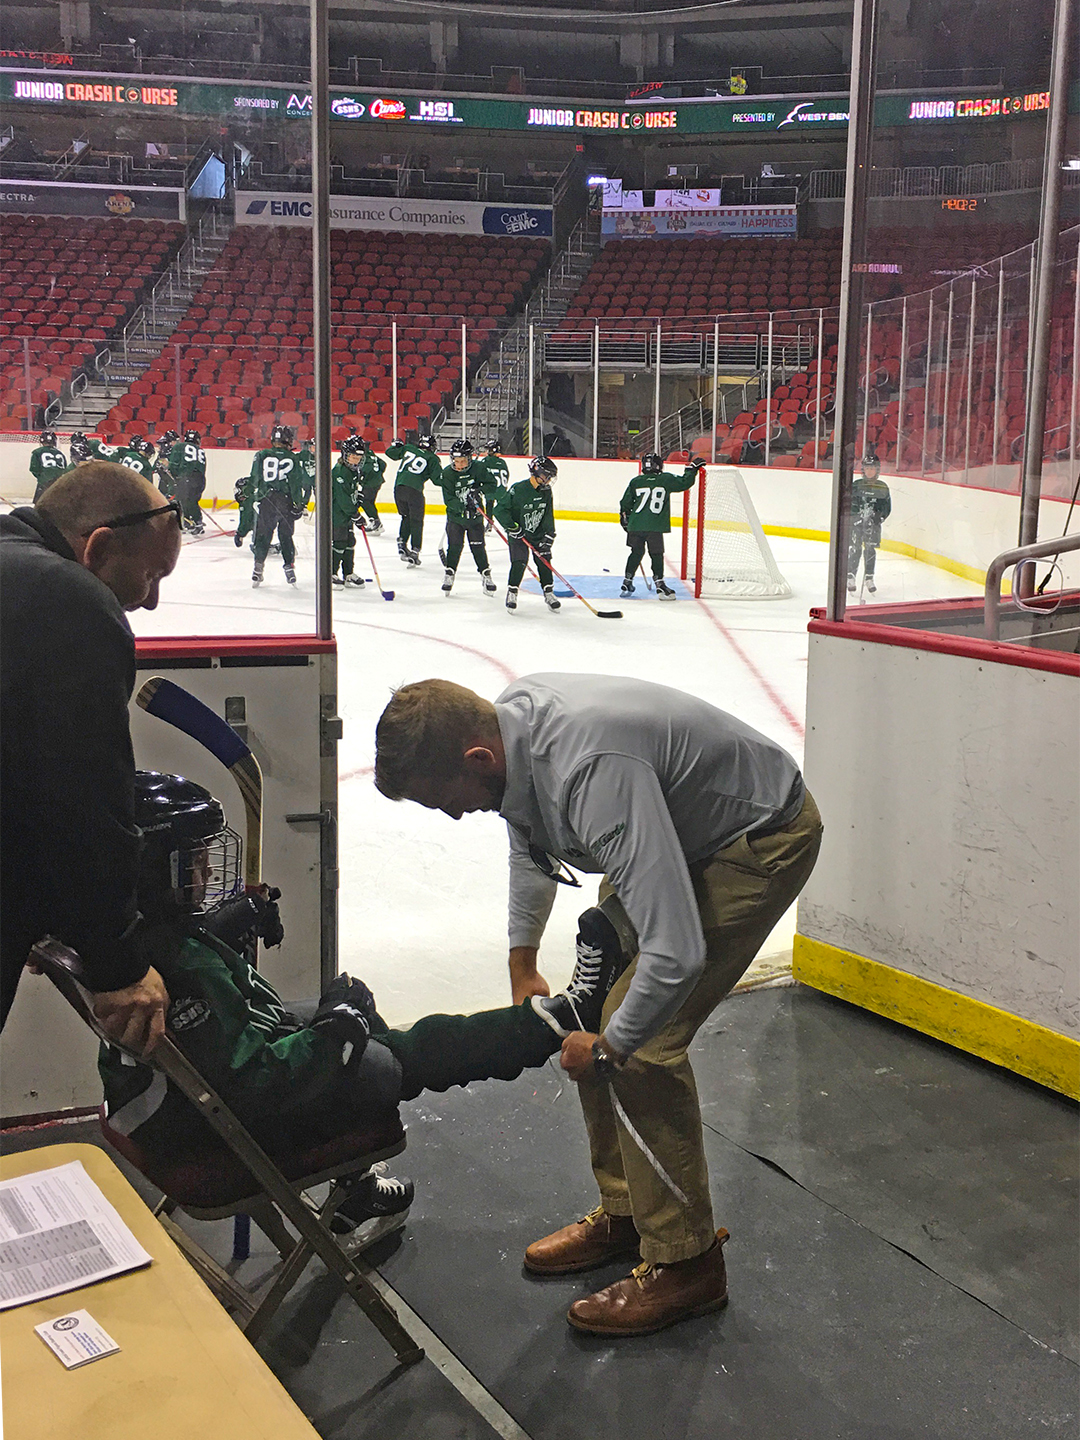 Joe Smith, Owner of Home Solutions of Iowa ties skates for one of the participants of the Iowa Wild Junior Crash Course.